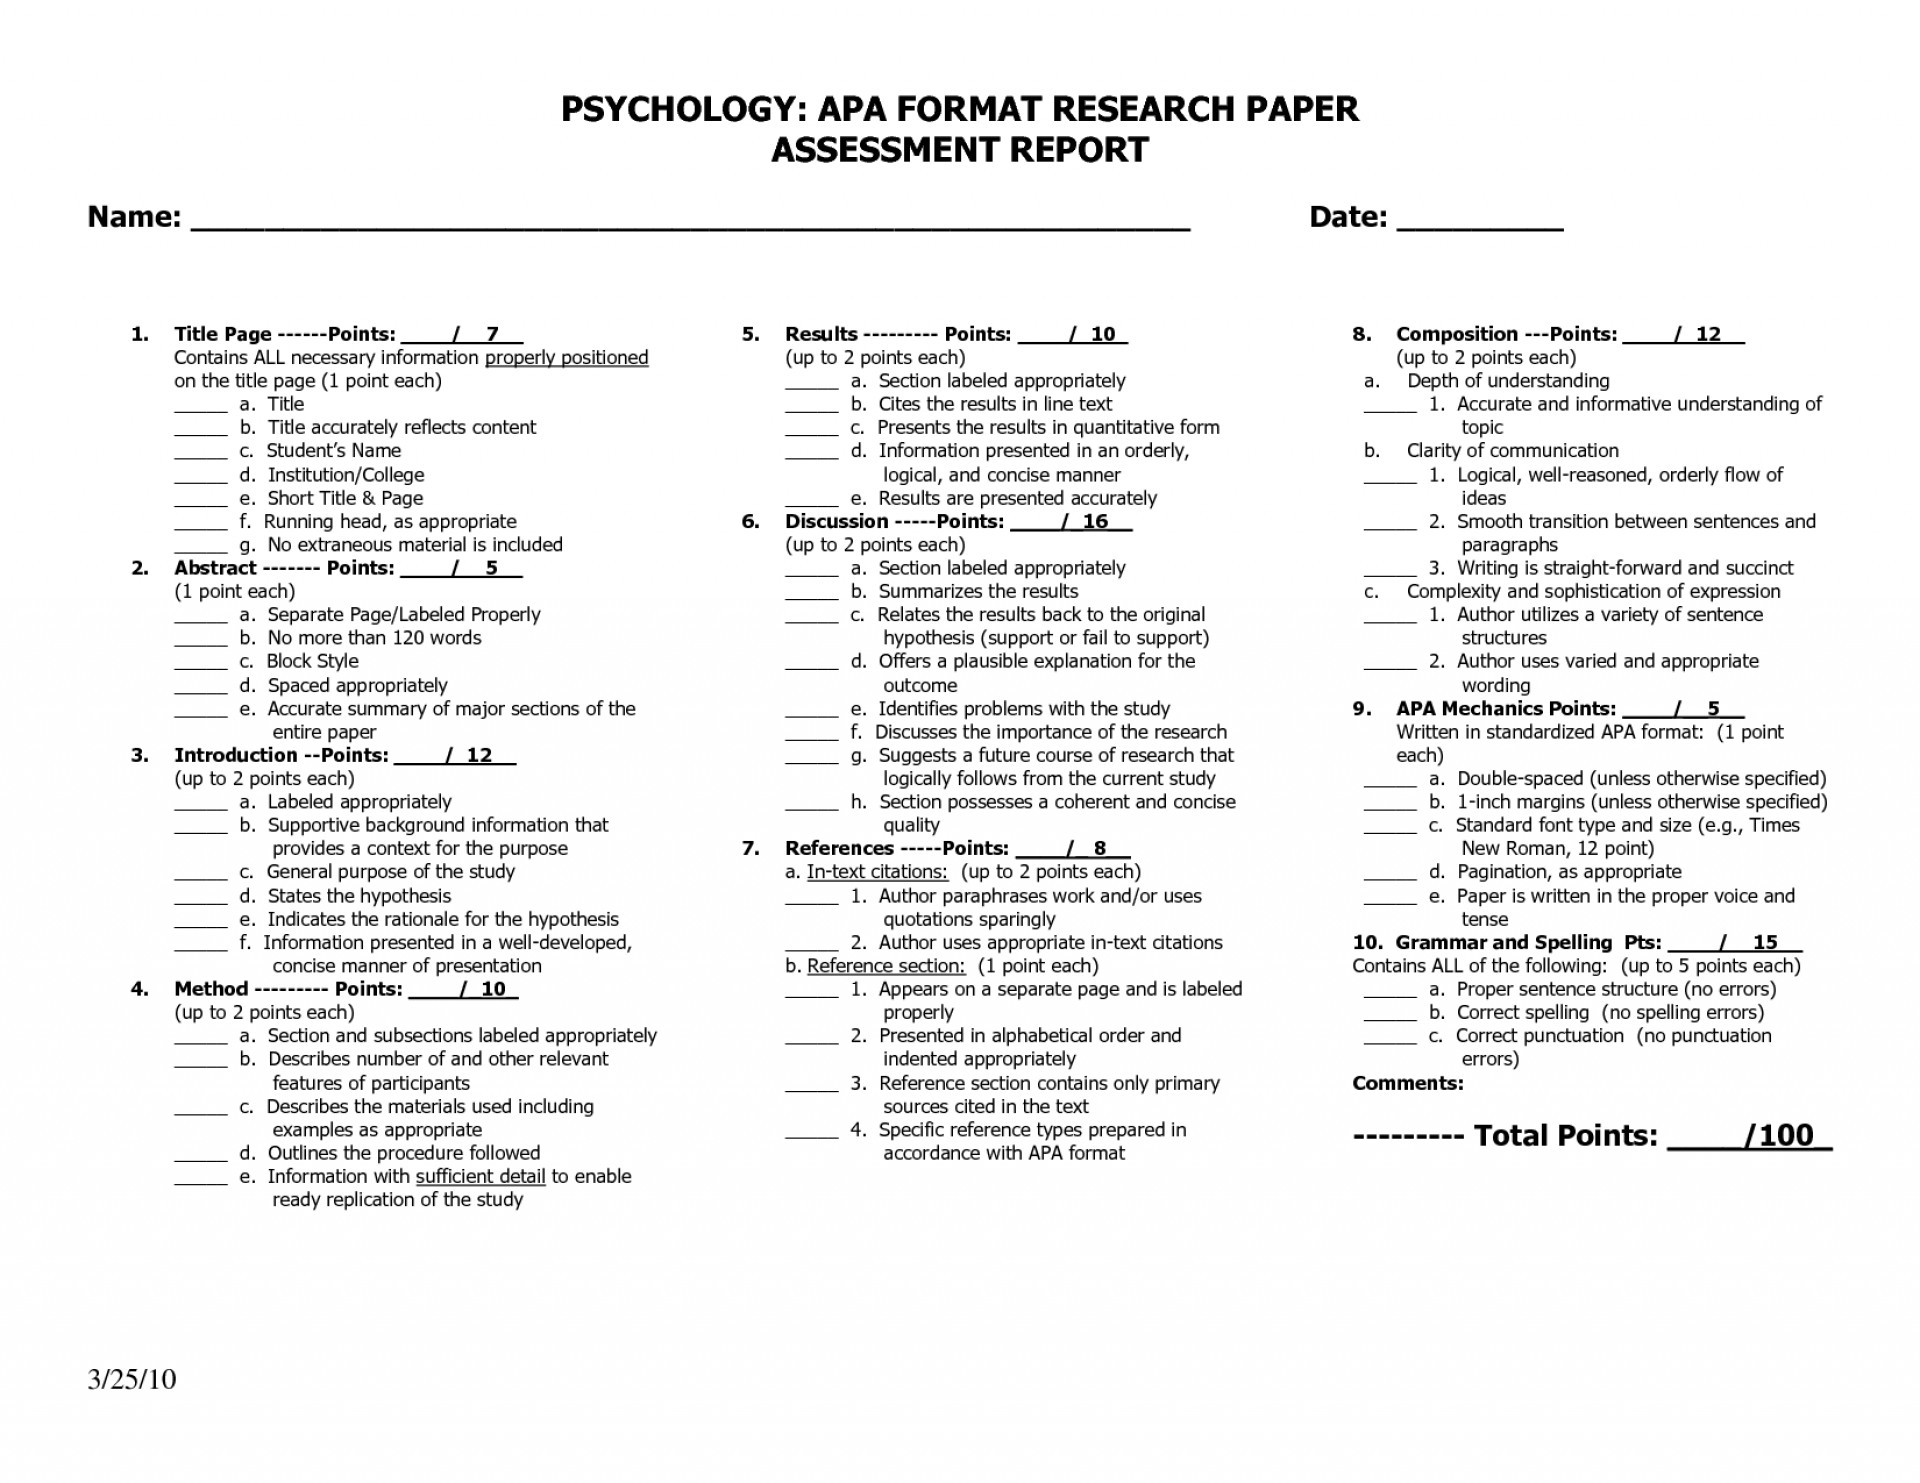 024 Research Paper Example Of Using Apa Style Format Rare Psychology In Proposal How To Write An Abstract 1920